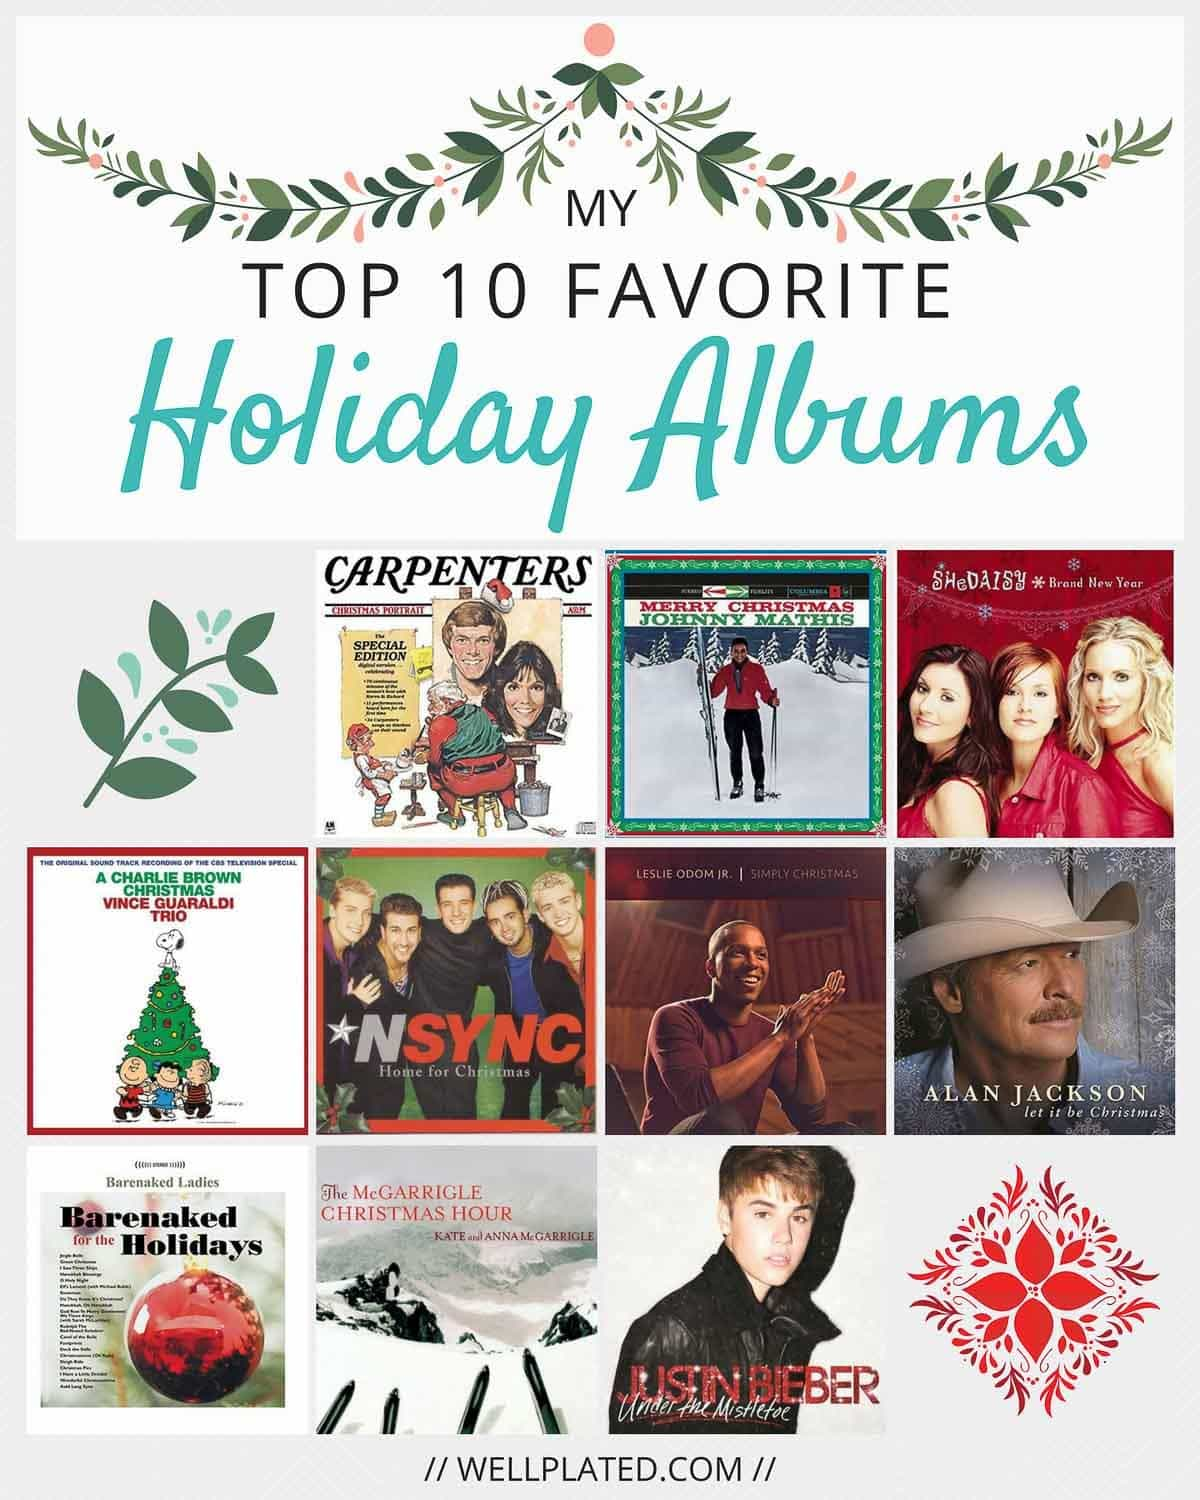 The BEST Holiday Christmas Music! A list of 10 favorite holiday albums to make your season merry and bright. From wellplated.com @wellplated